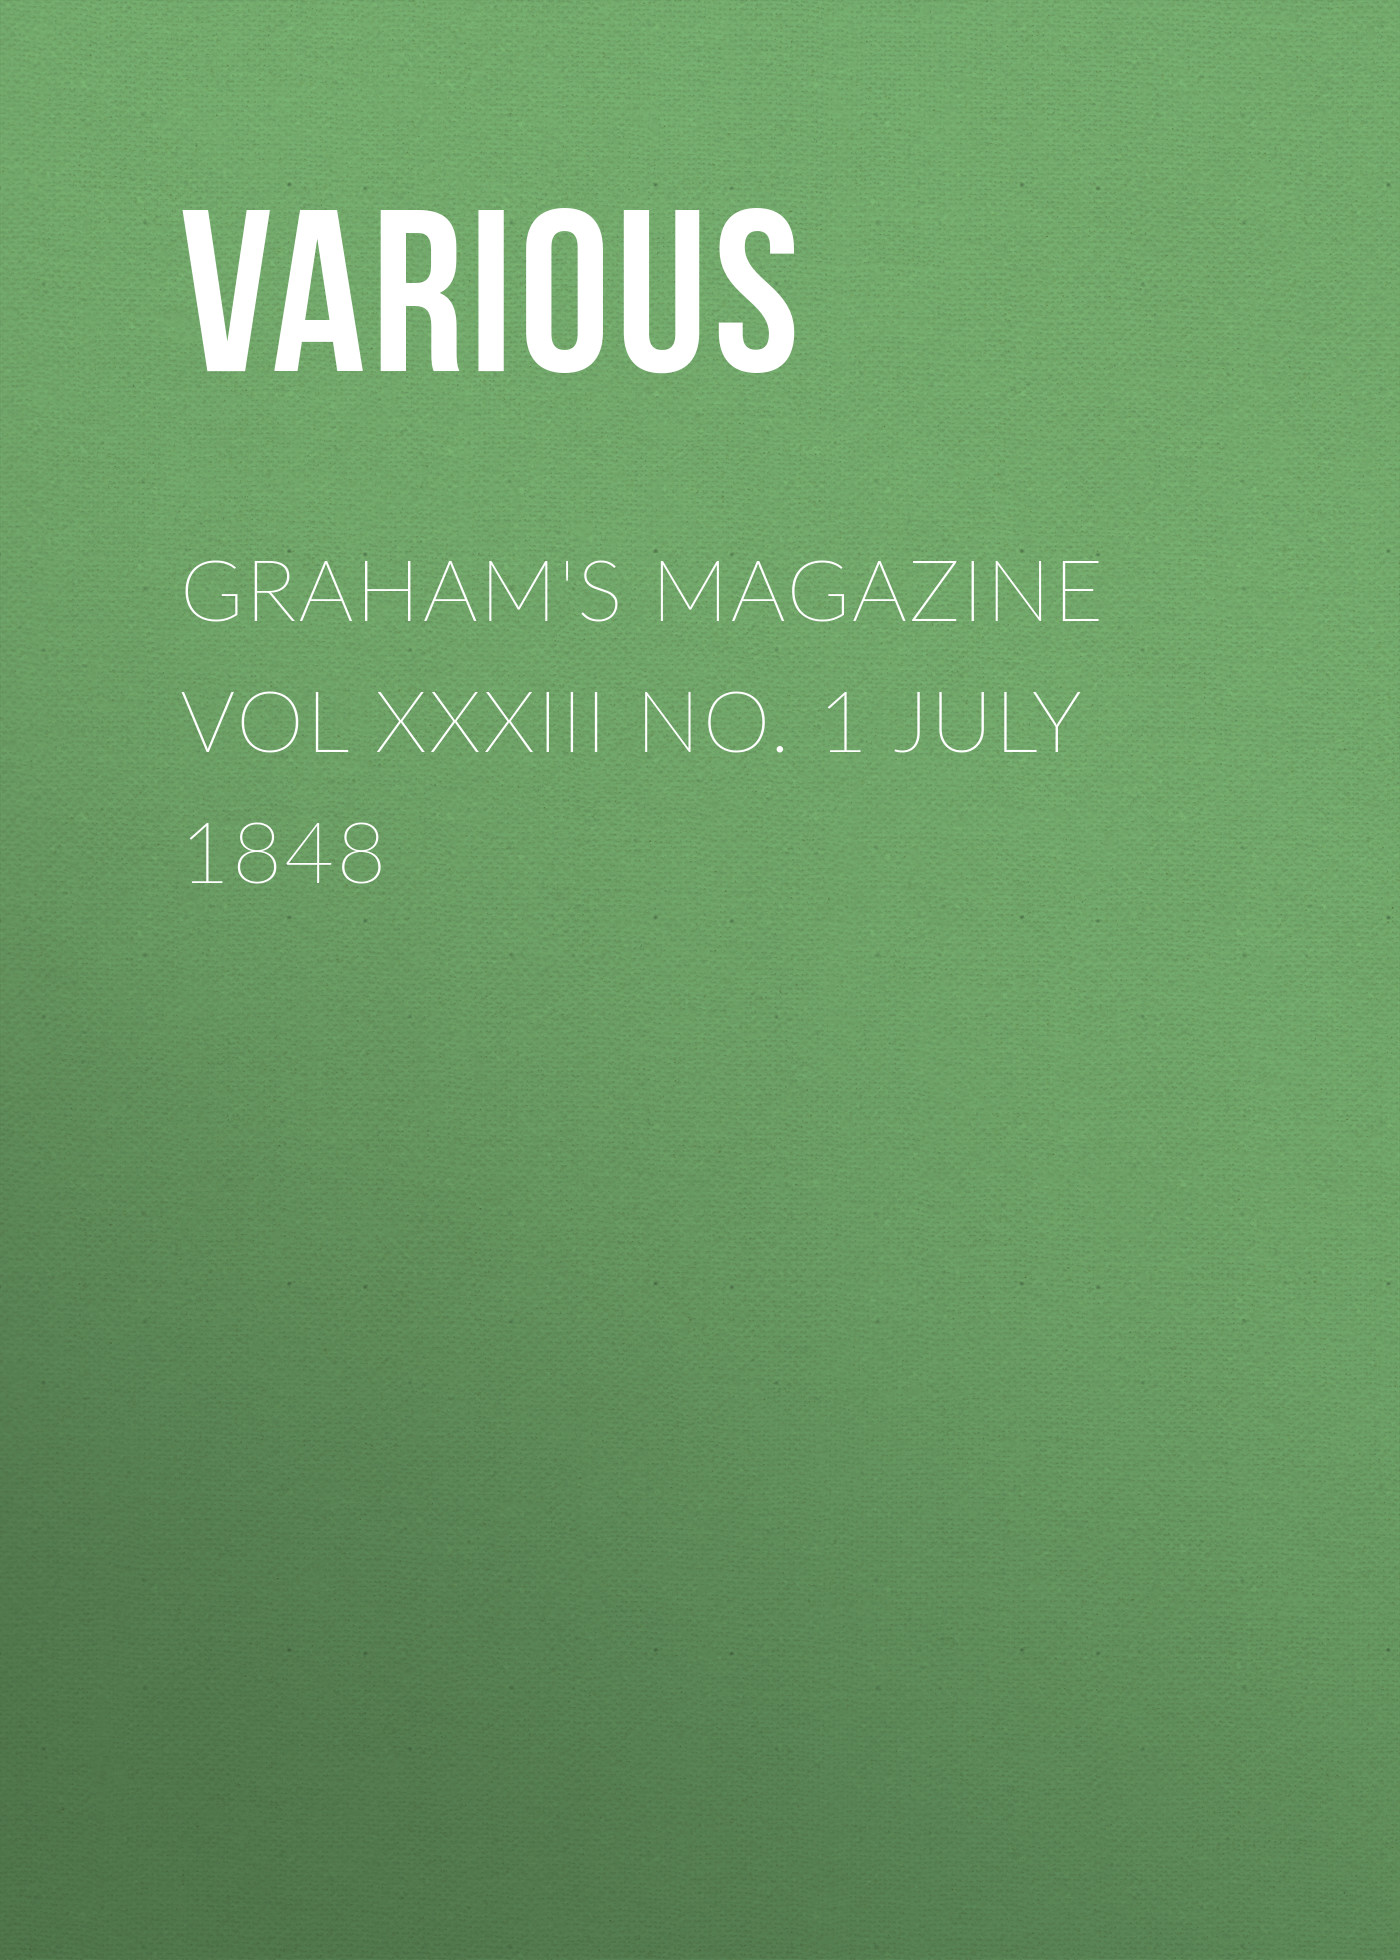 Various Graham's Magazine Vol XXXIII No. 1 July 1848 hoodz dvd magazine issue 1